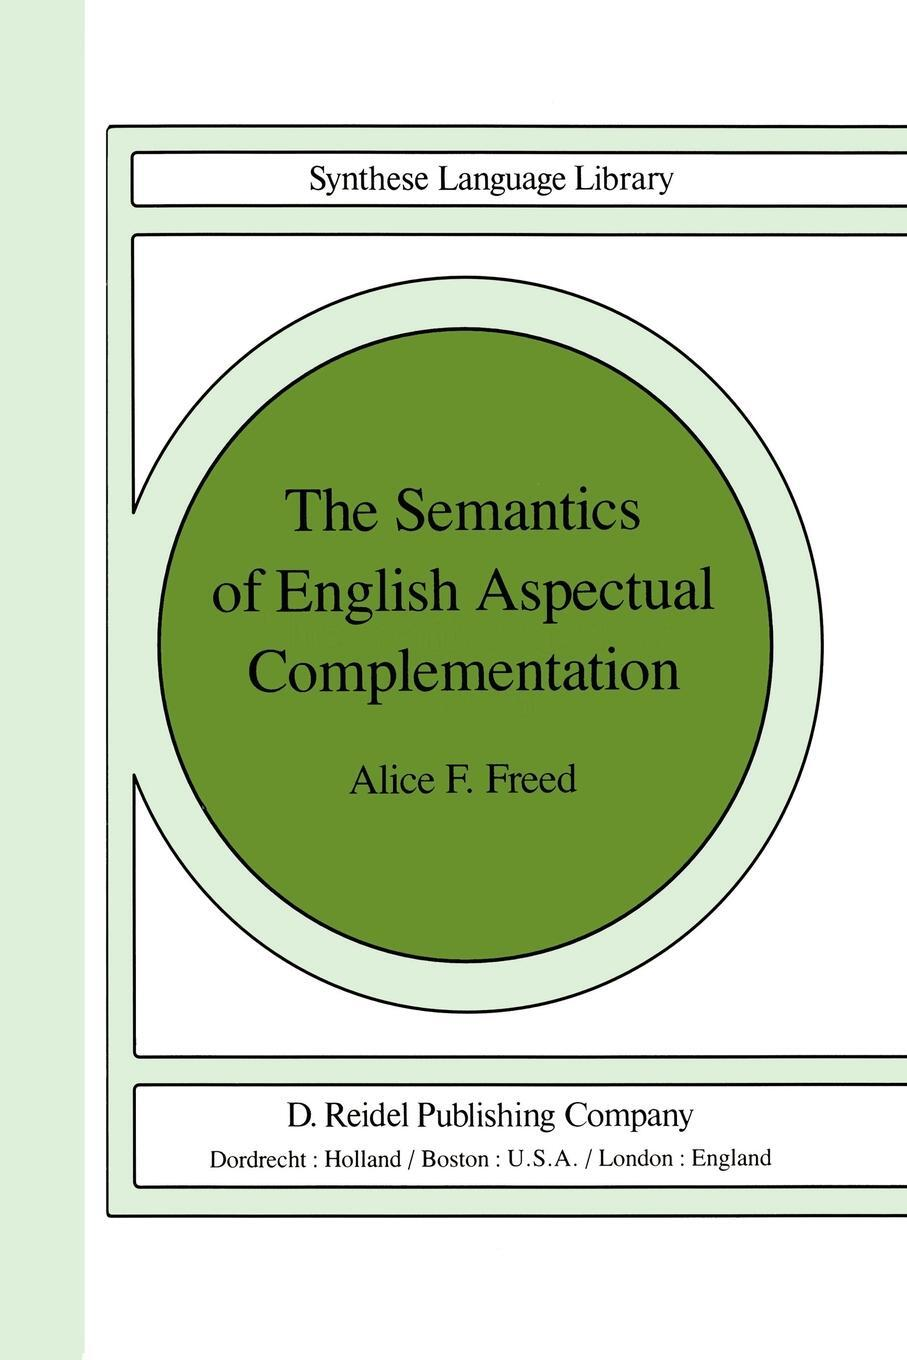 The Semantics of English Aspectual Complementation. Alice F. Freed